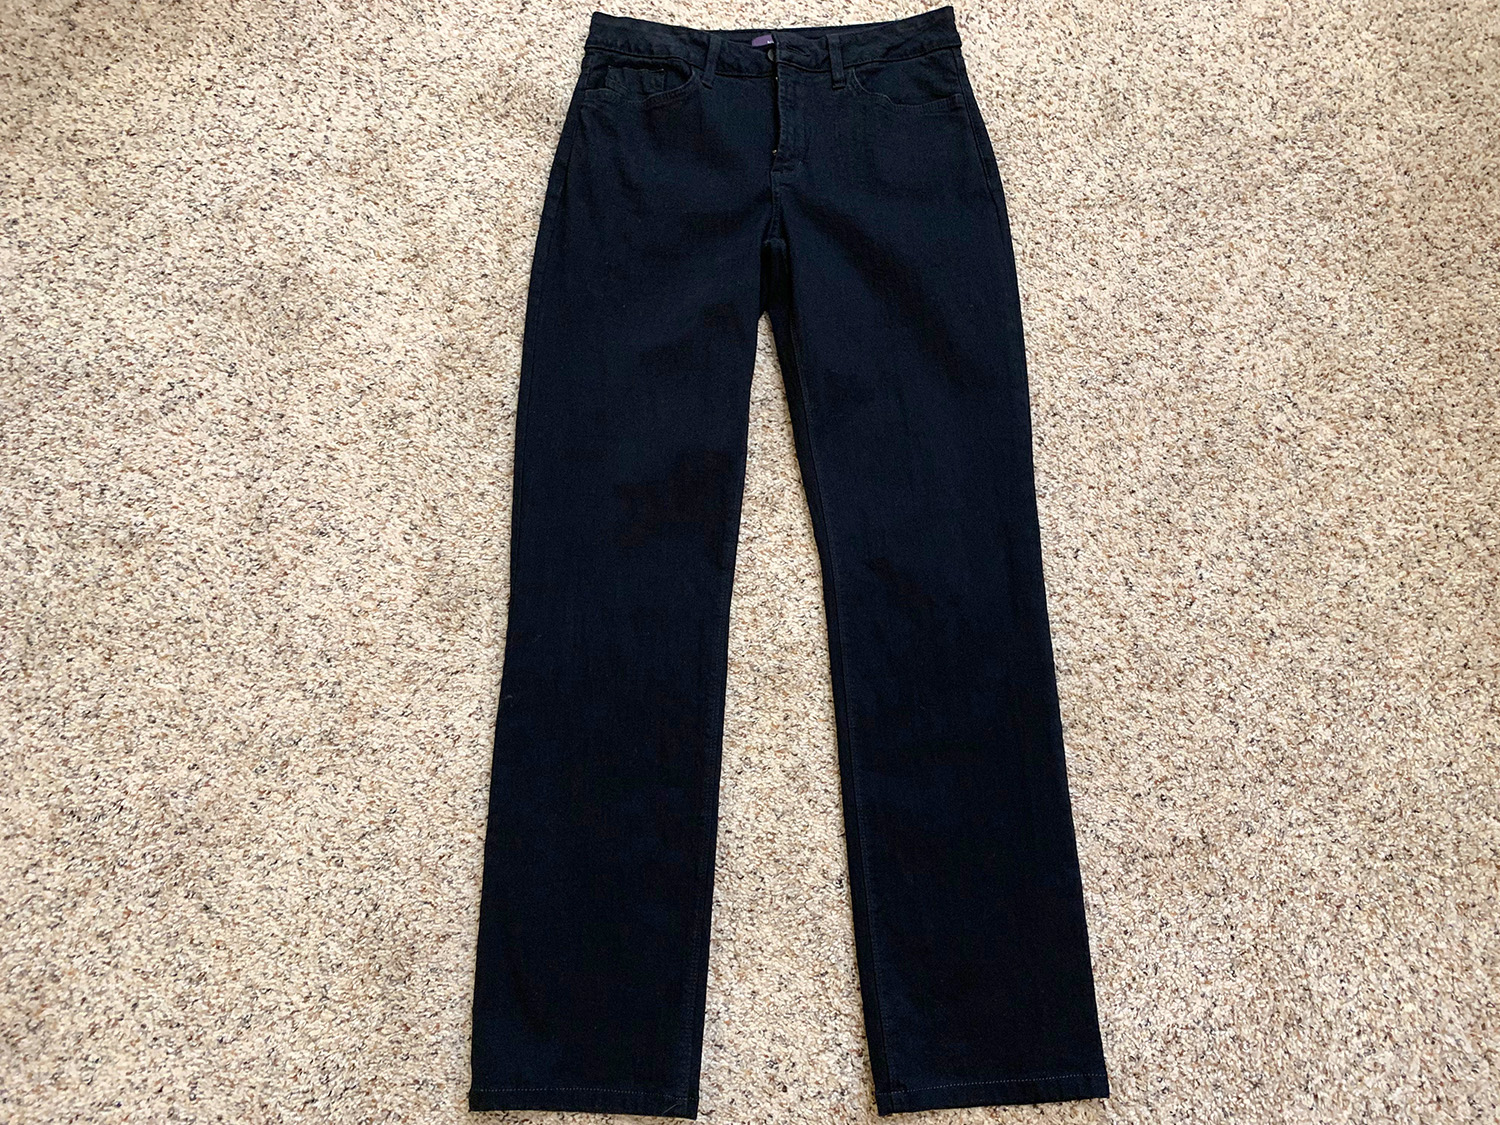 NYDJ Not Your Daughters Jeans Womens Marilyn Straight Black Jeans